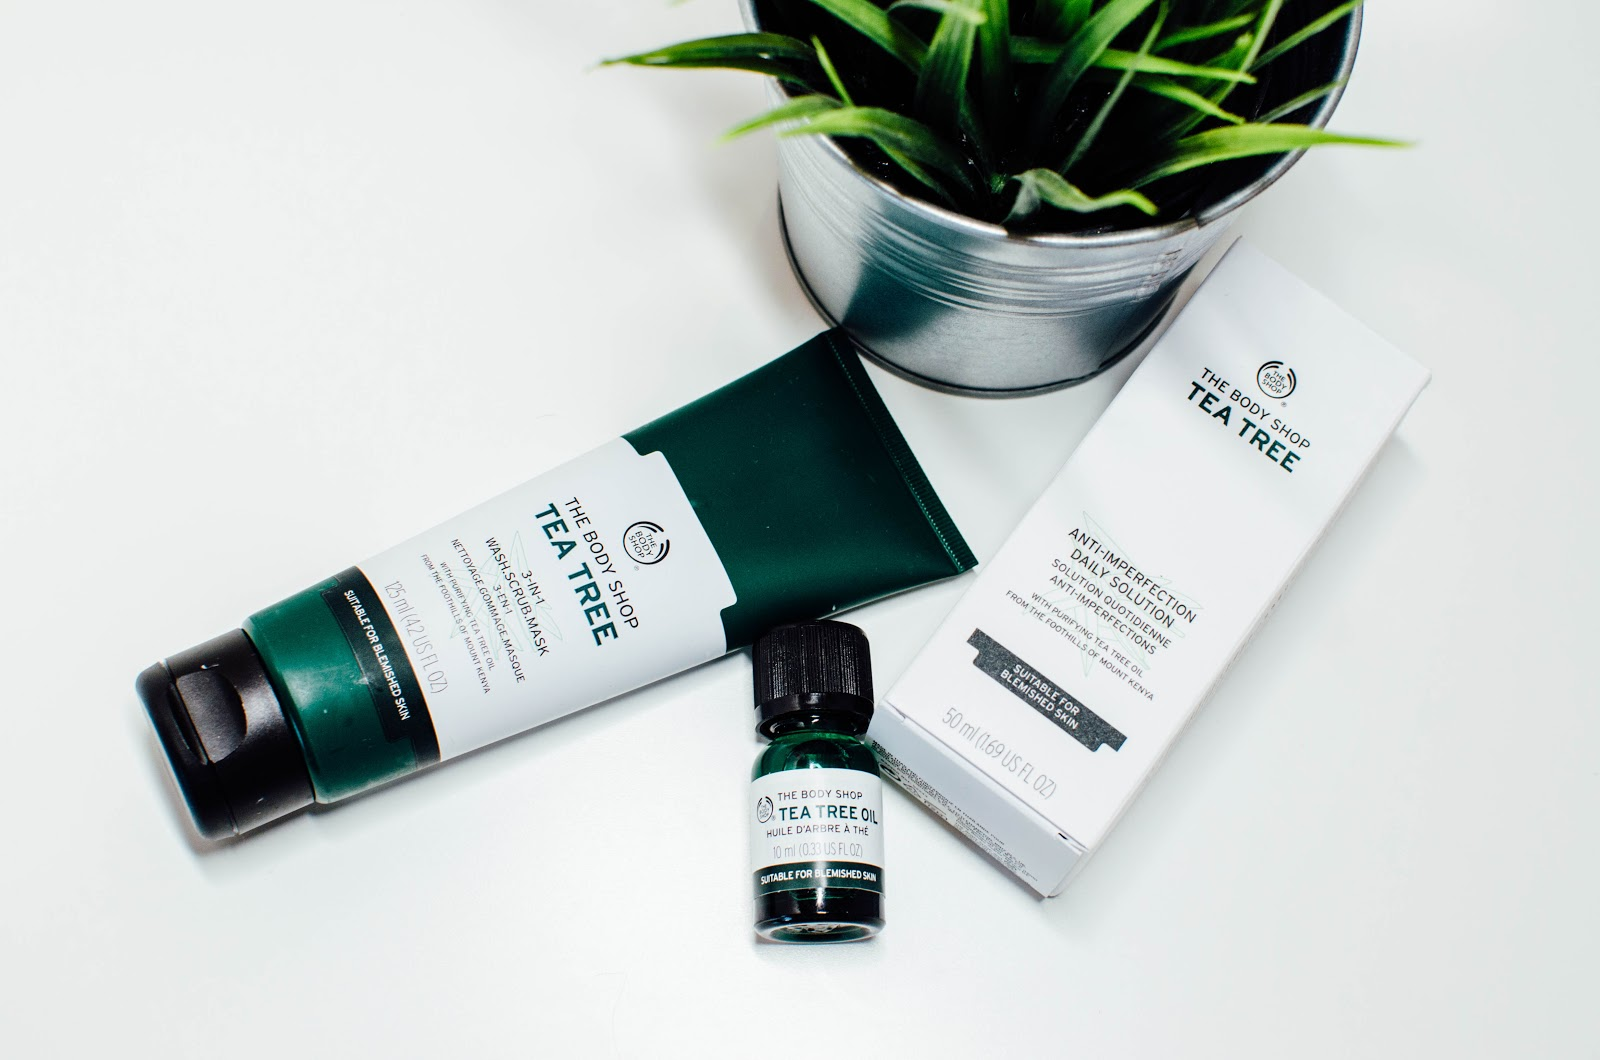 The Body Shop Tea Tree Range Being Ashleigh Fashion Lifestyle Oil 10ml Is Place To Go For All Skin Care Essentials I Remember Using Products When Just Started Looking After My Properly